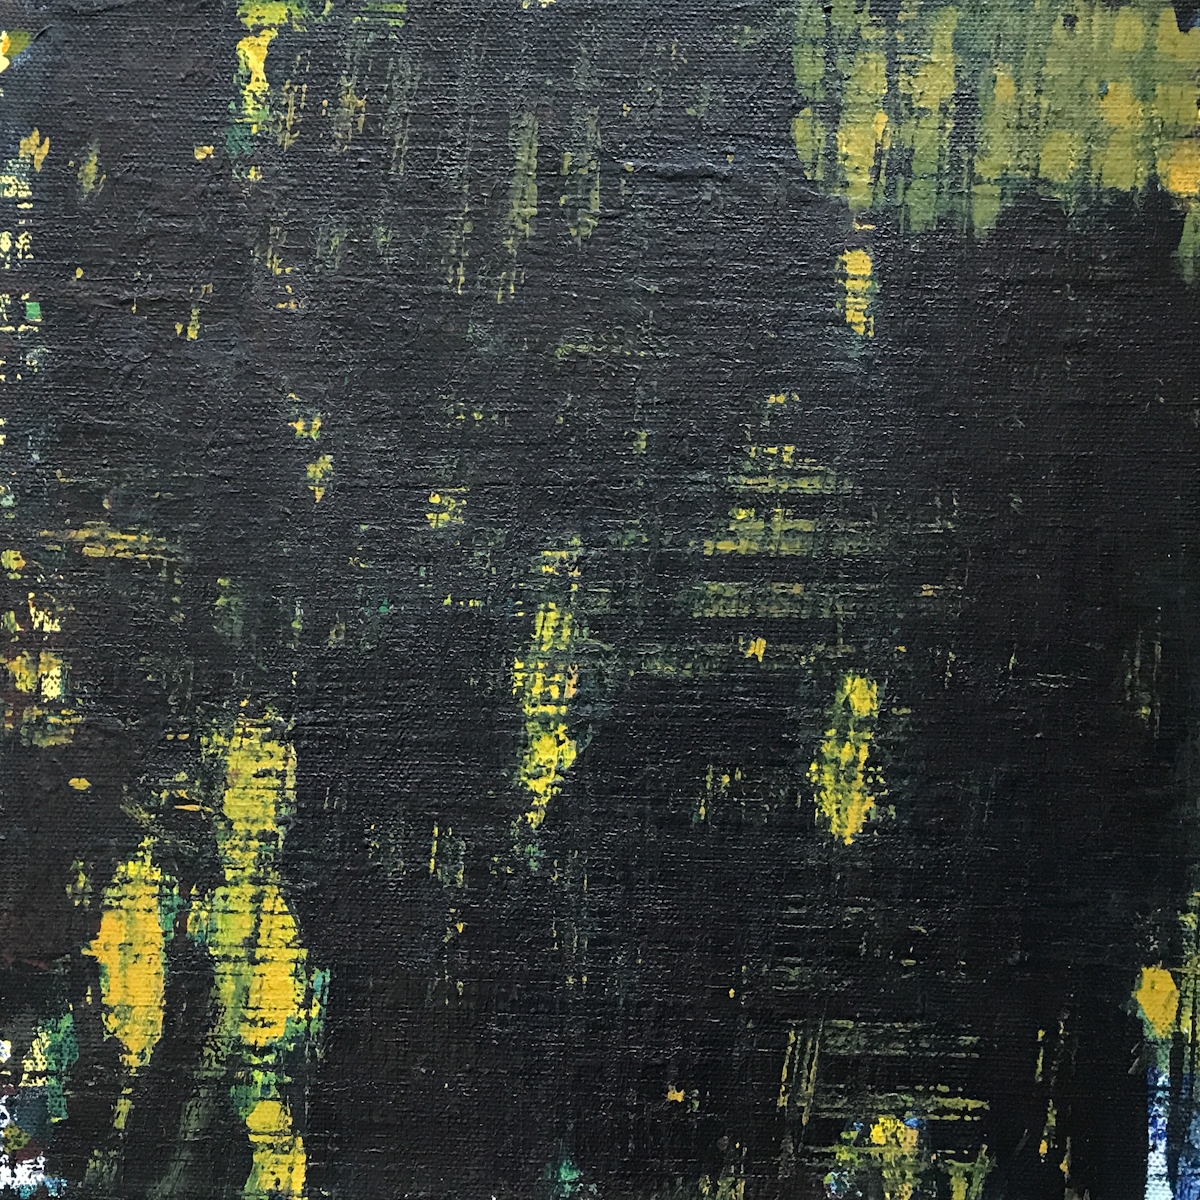 Night Series Acrylic on Canvas 05 12x12